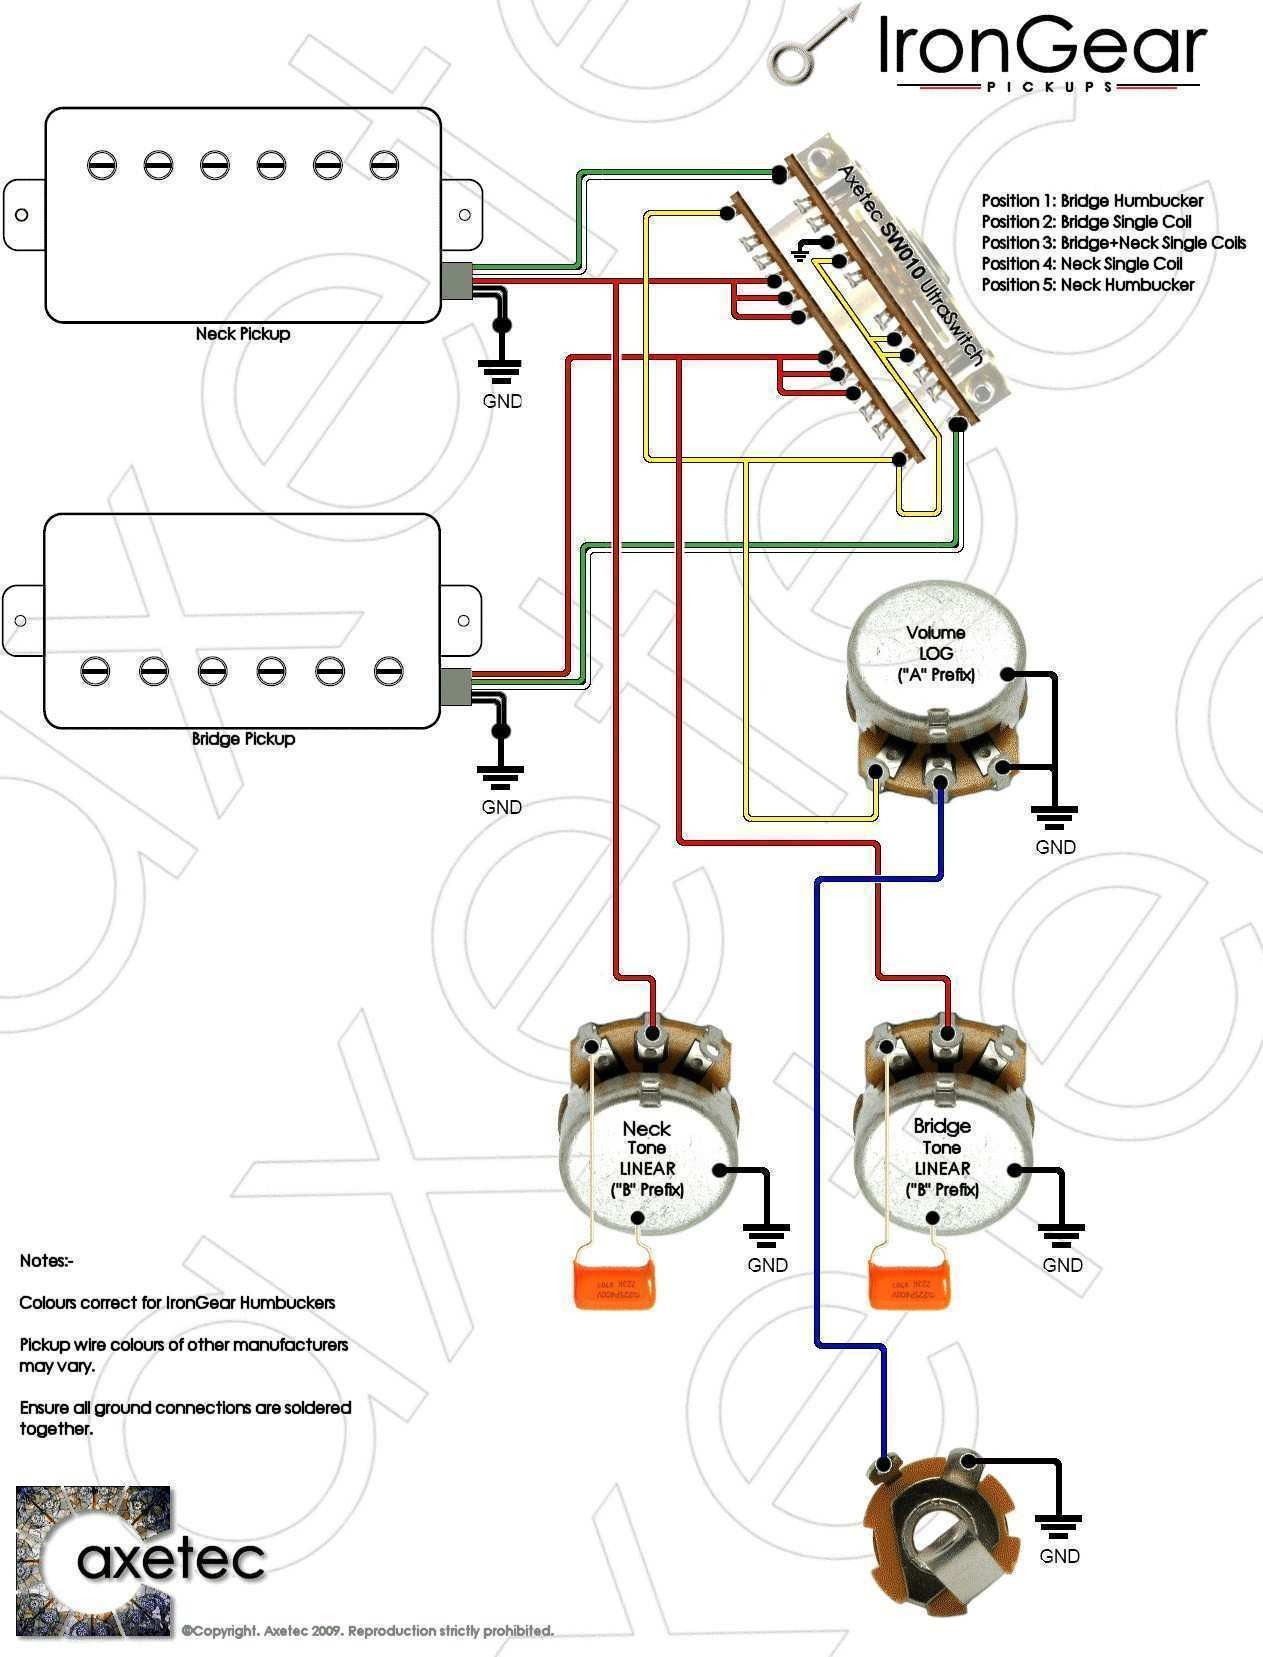 [DIAGRAM_34OR]  38F32 Guitar Wiring Diagrams One Pickup | Wiring Resources | 1997 Hurricane Gfci Wiring Diagram |  | Wiring Resources